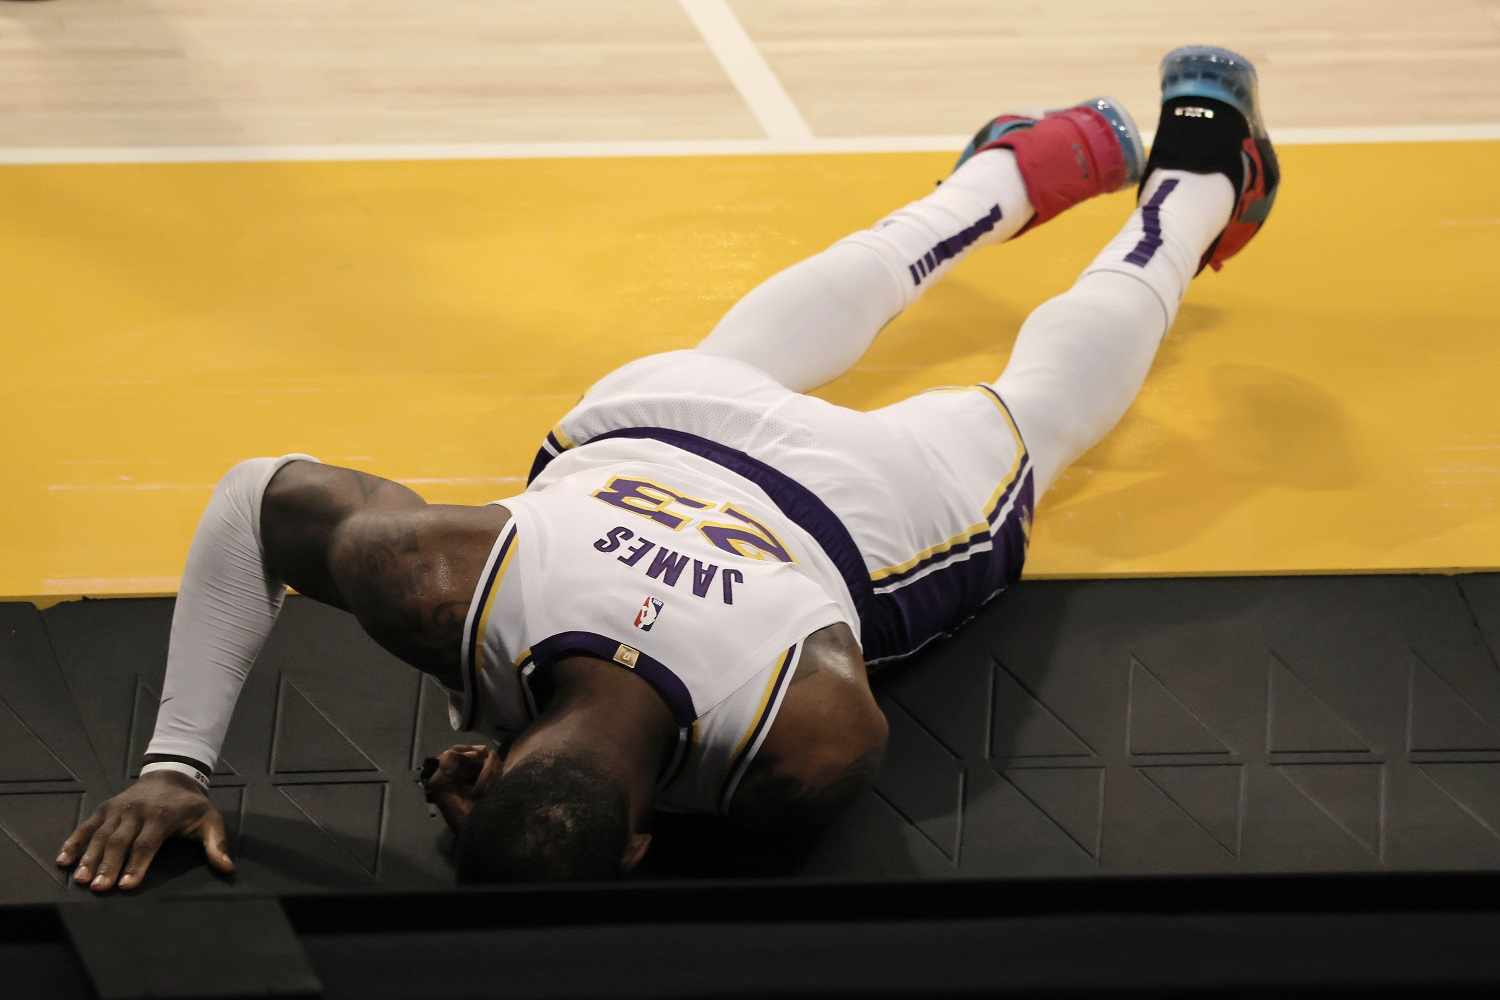 LeBron James suffered a high ankle sprain during a loose-ball scramble against the Atlanta Hawks